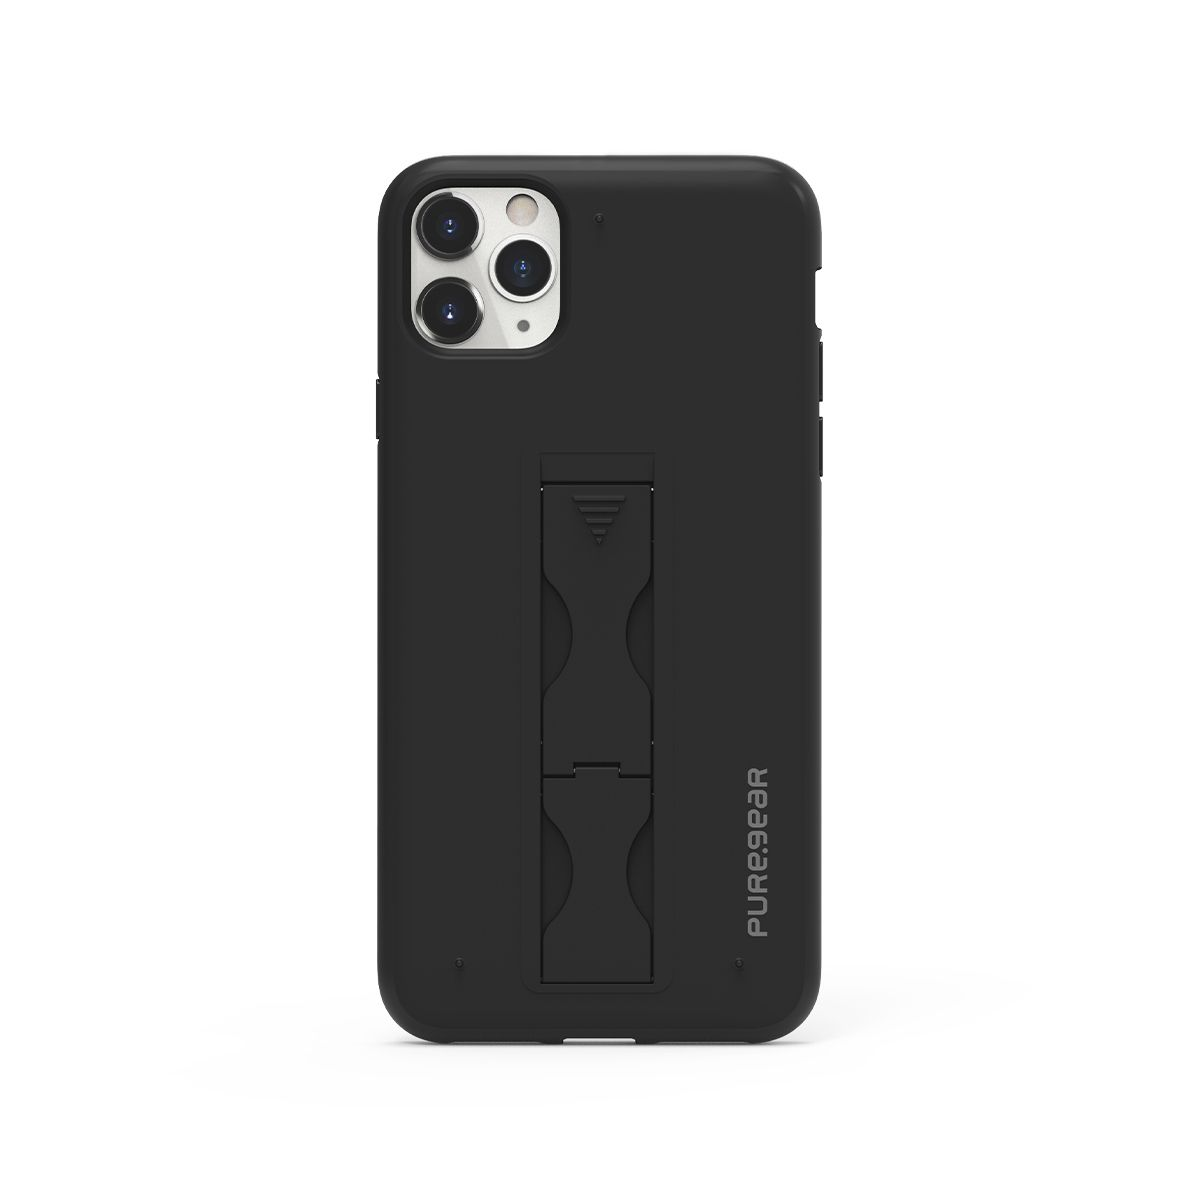 Apple iPhone 11 Pro Max SlimStik, Antimicrobial Kickstand Case – Black